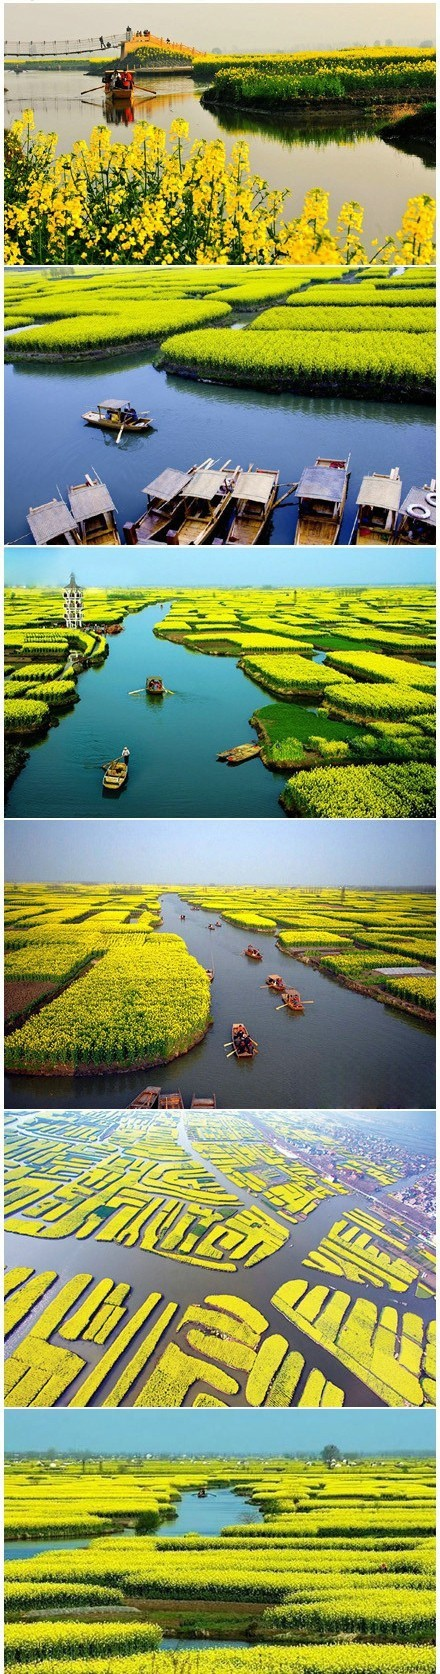 (*^__^*)  Just come see Canola Flowers in Xinghua, Jiangsu Province of China